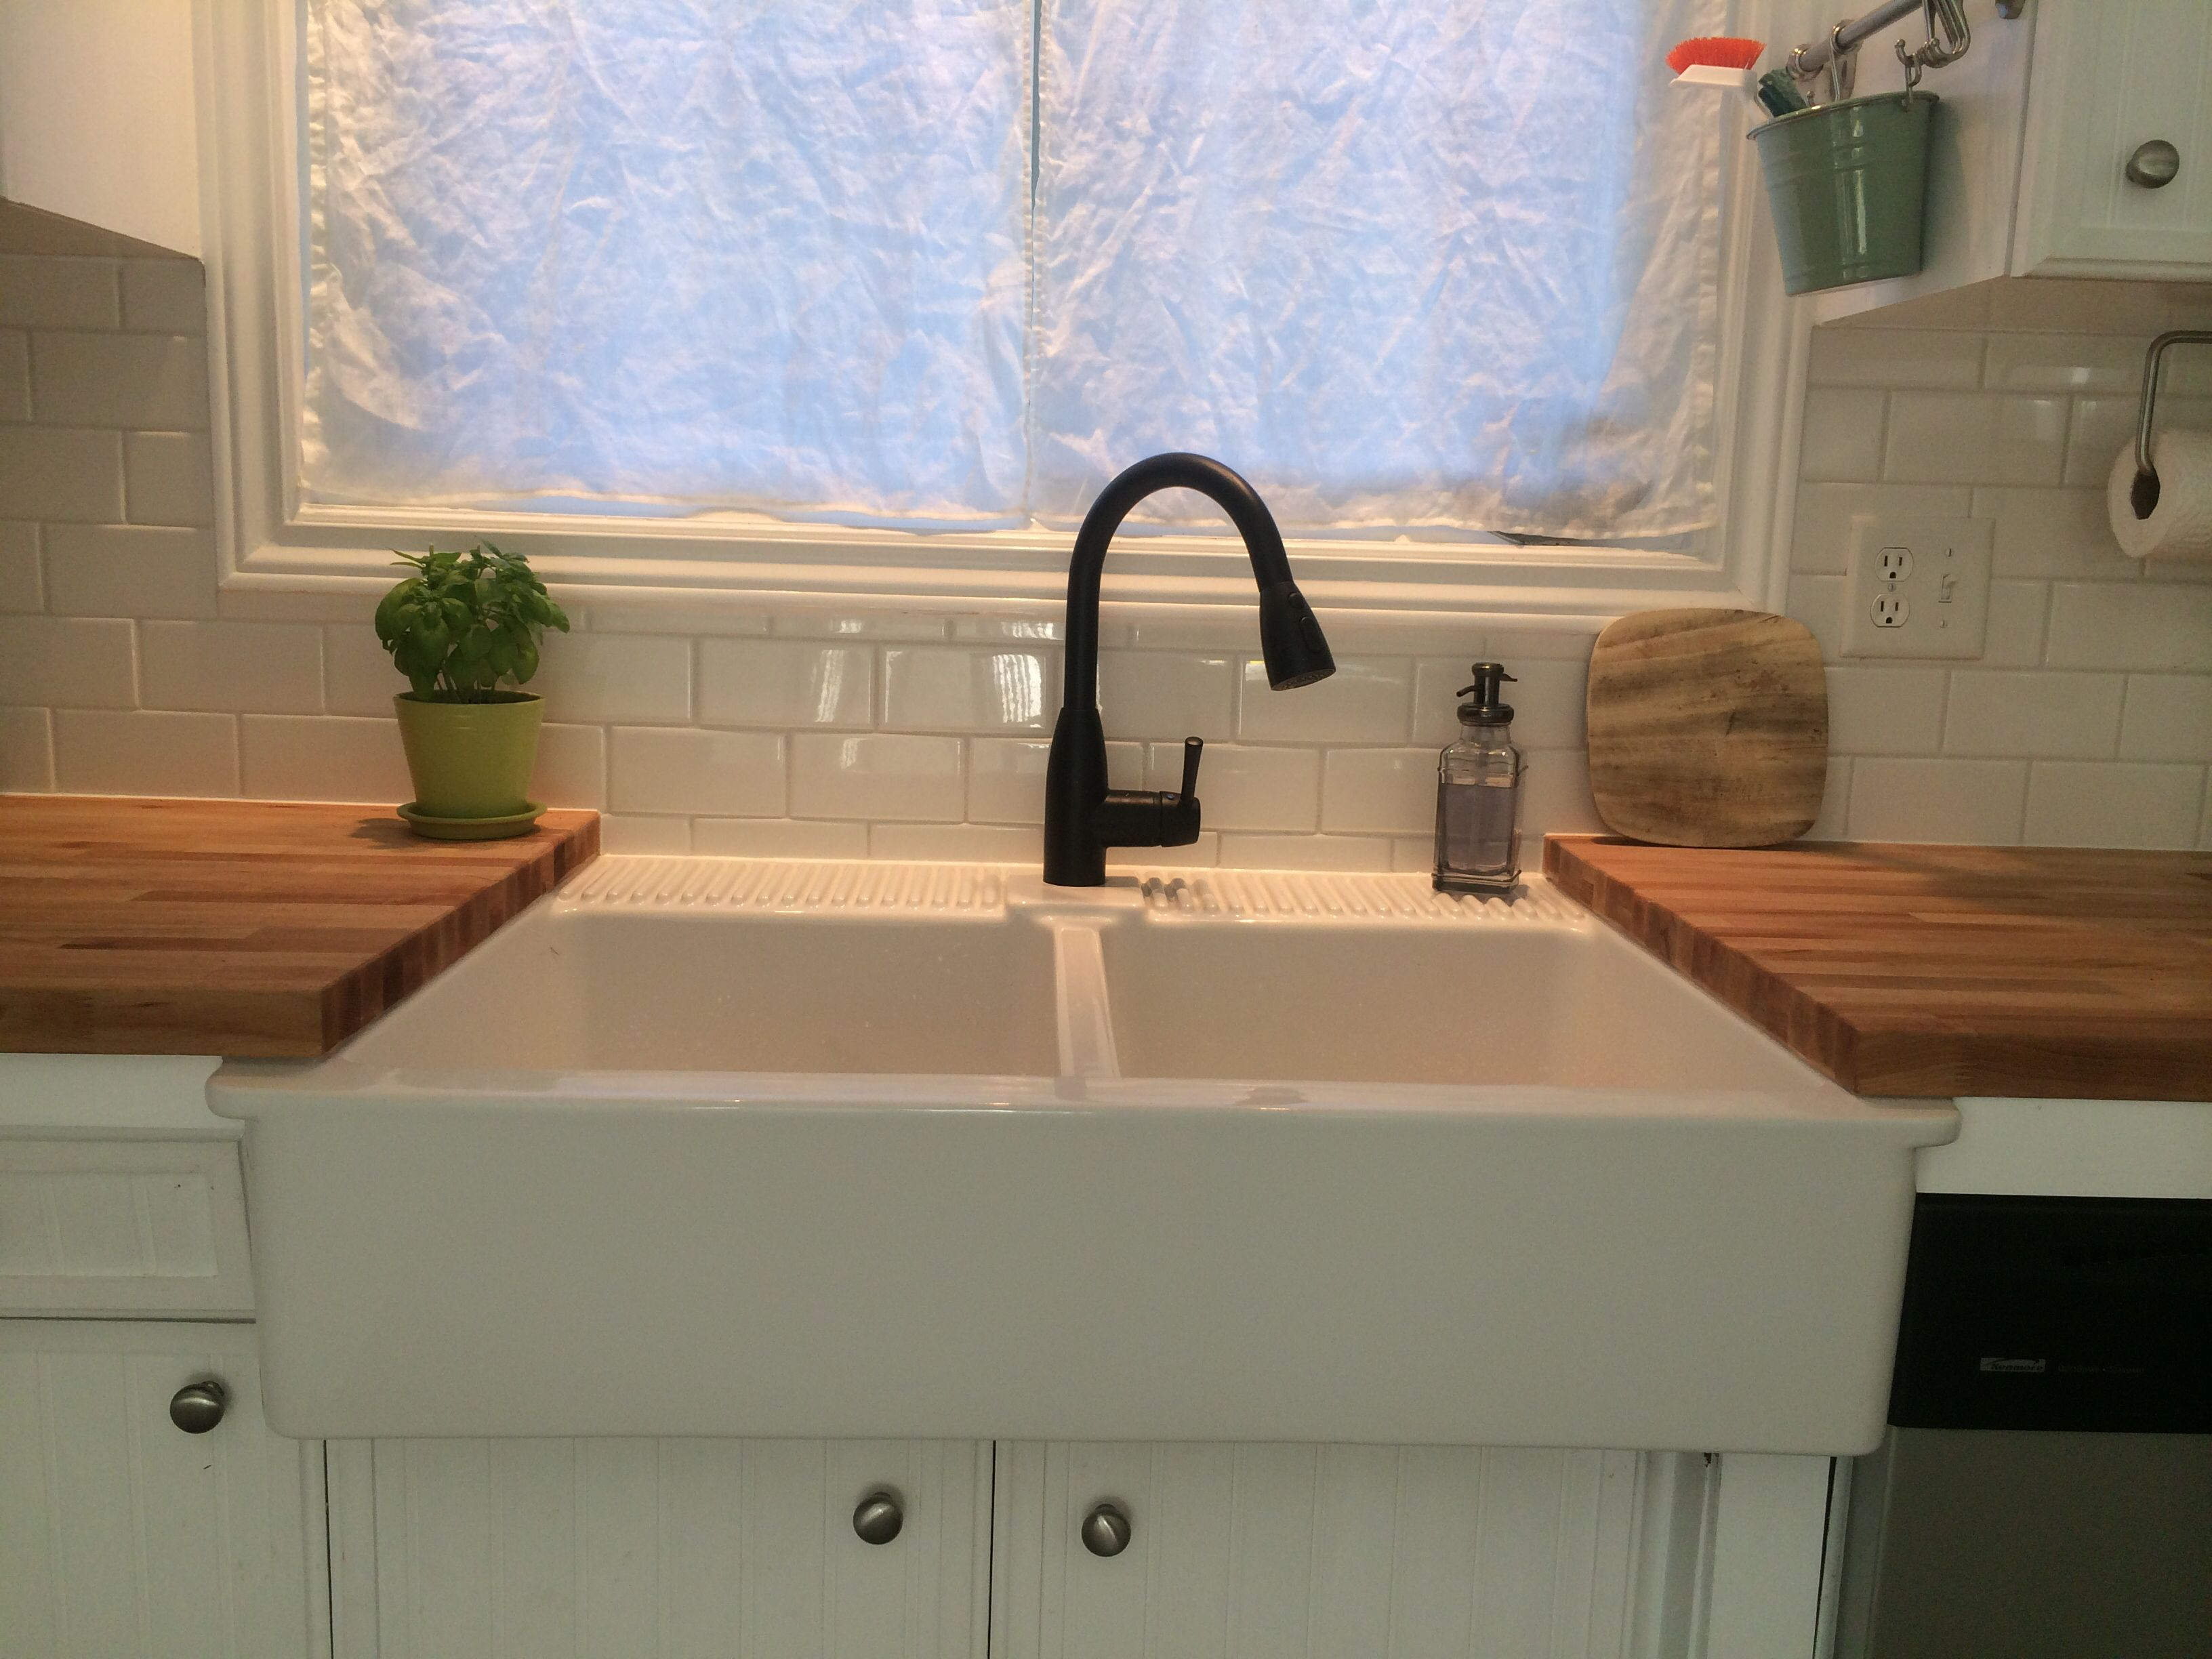 Farmhouse Sink From Ikea I Love This Partial Ikea Undermount Crumbs Go Right Into The Sink Wi Pedestal Sink Storage Ikea Farmhouse Sink Ikea Apron Sink